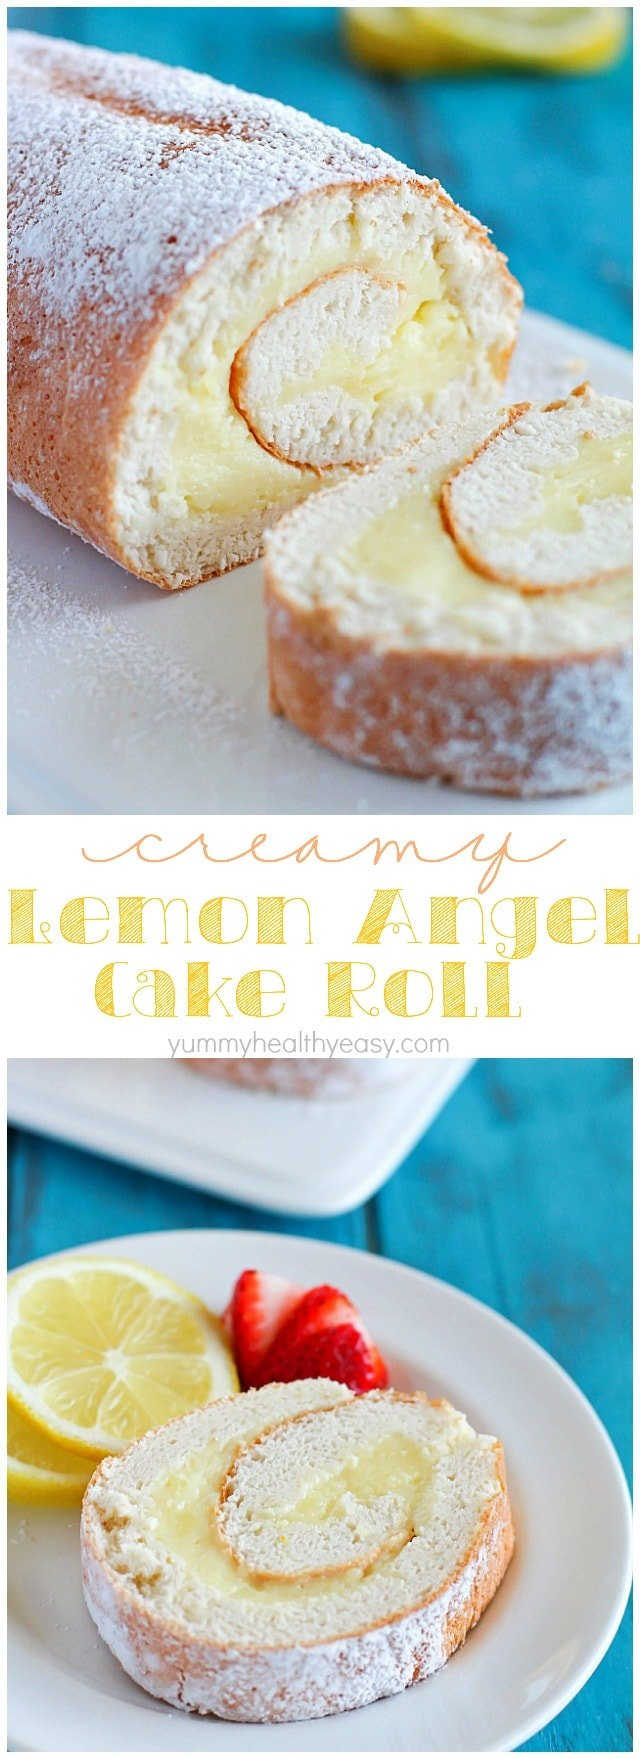 Lemon Cream Angel Cake Roll